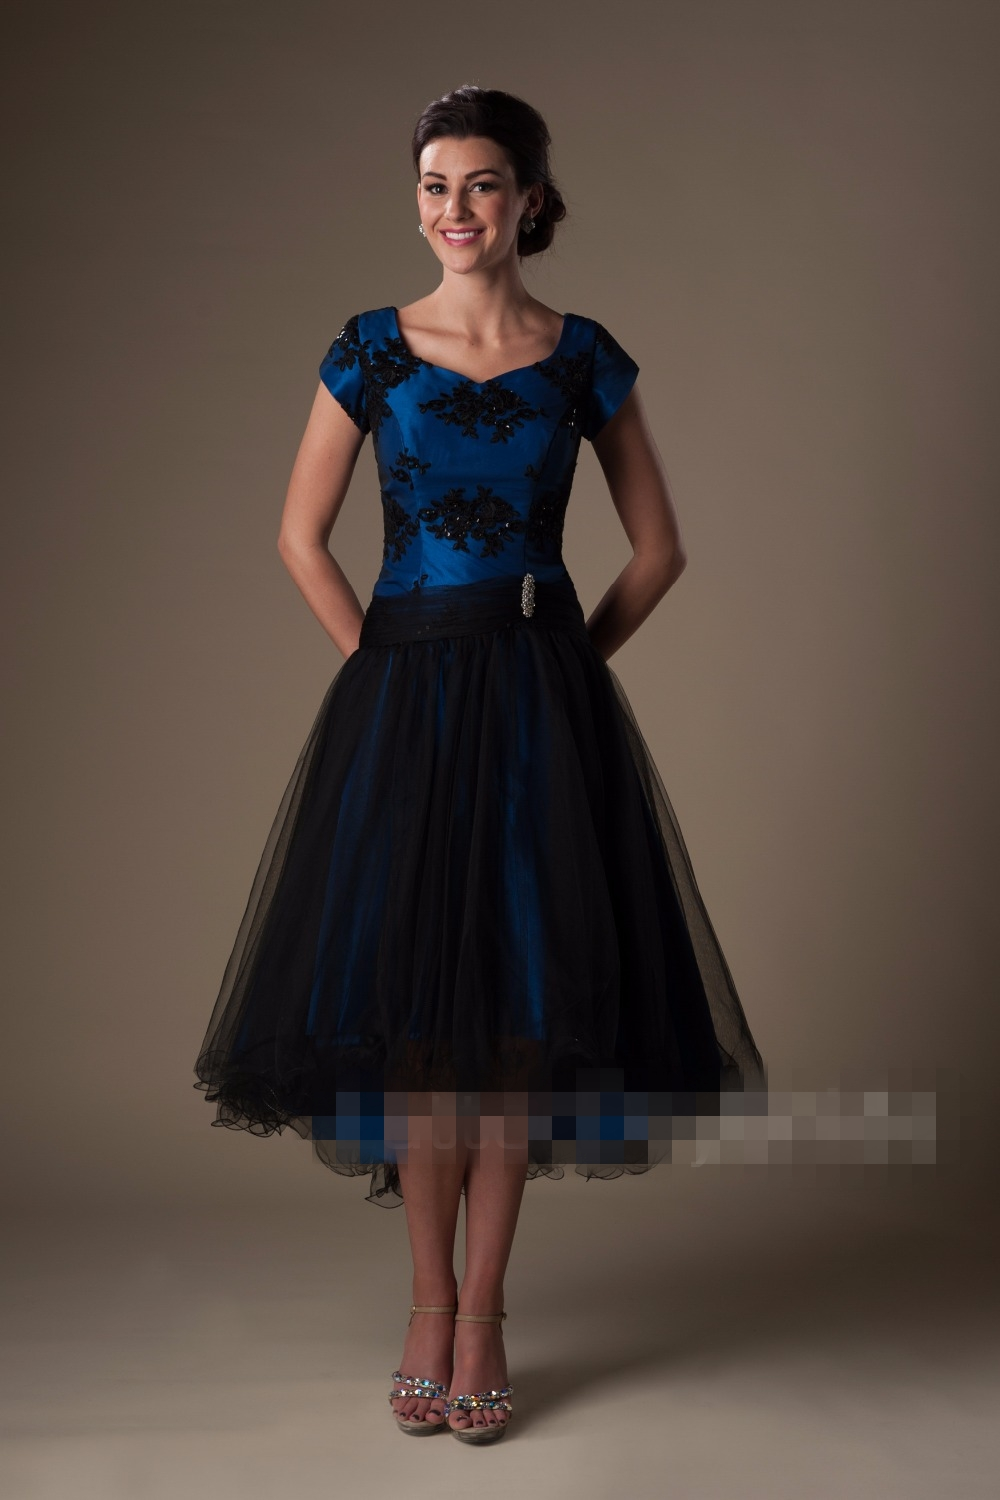 Royal Blue Black High Low Modest   Prom     Dresses   Short With Cap Sleeves Beaded Lace Appliques Short Front Long Back   Prom   Gowns